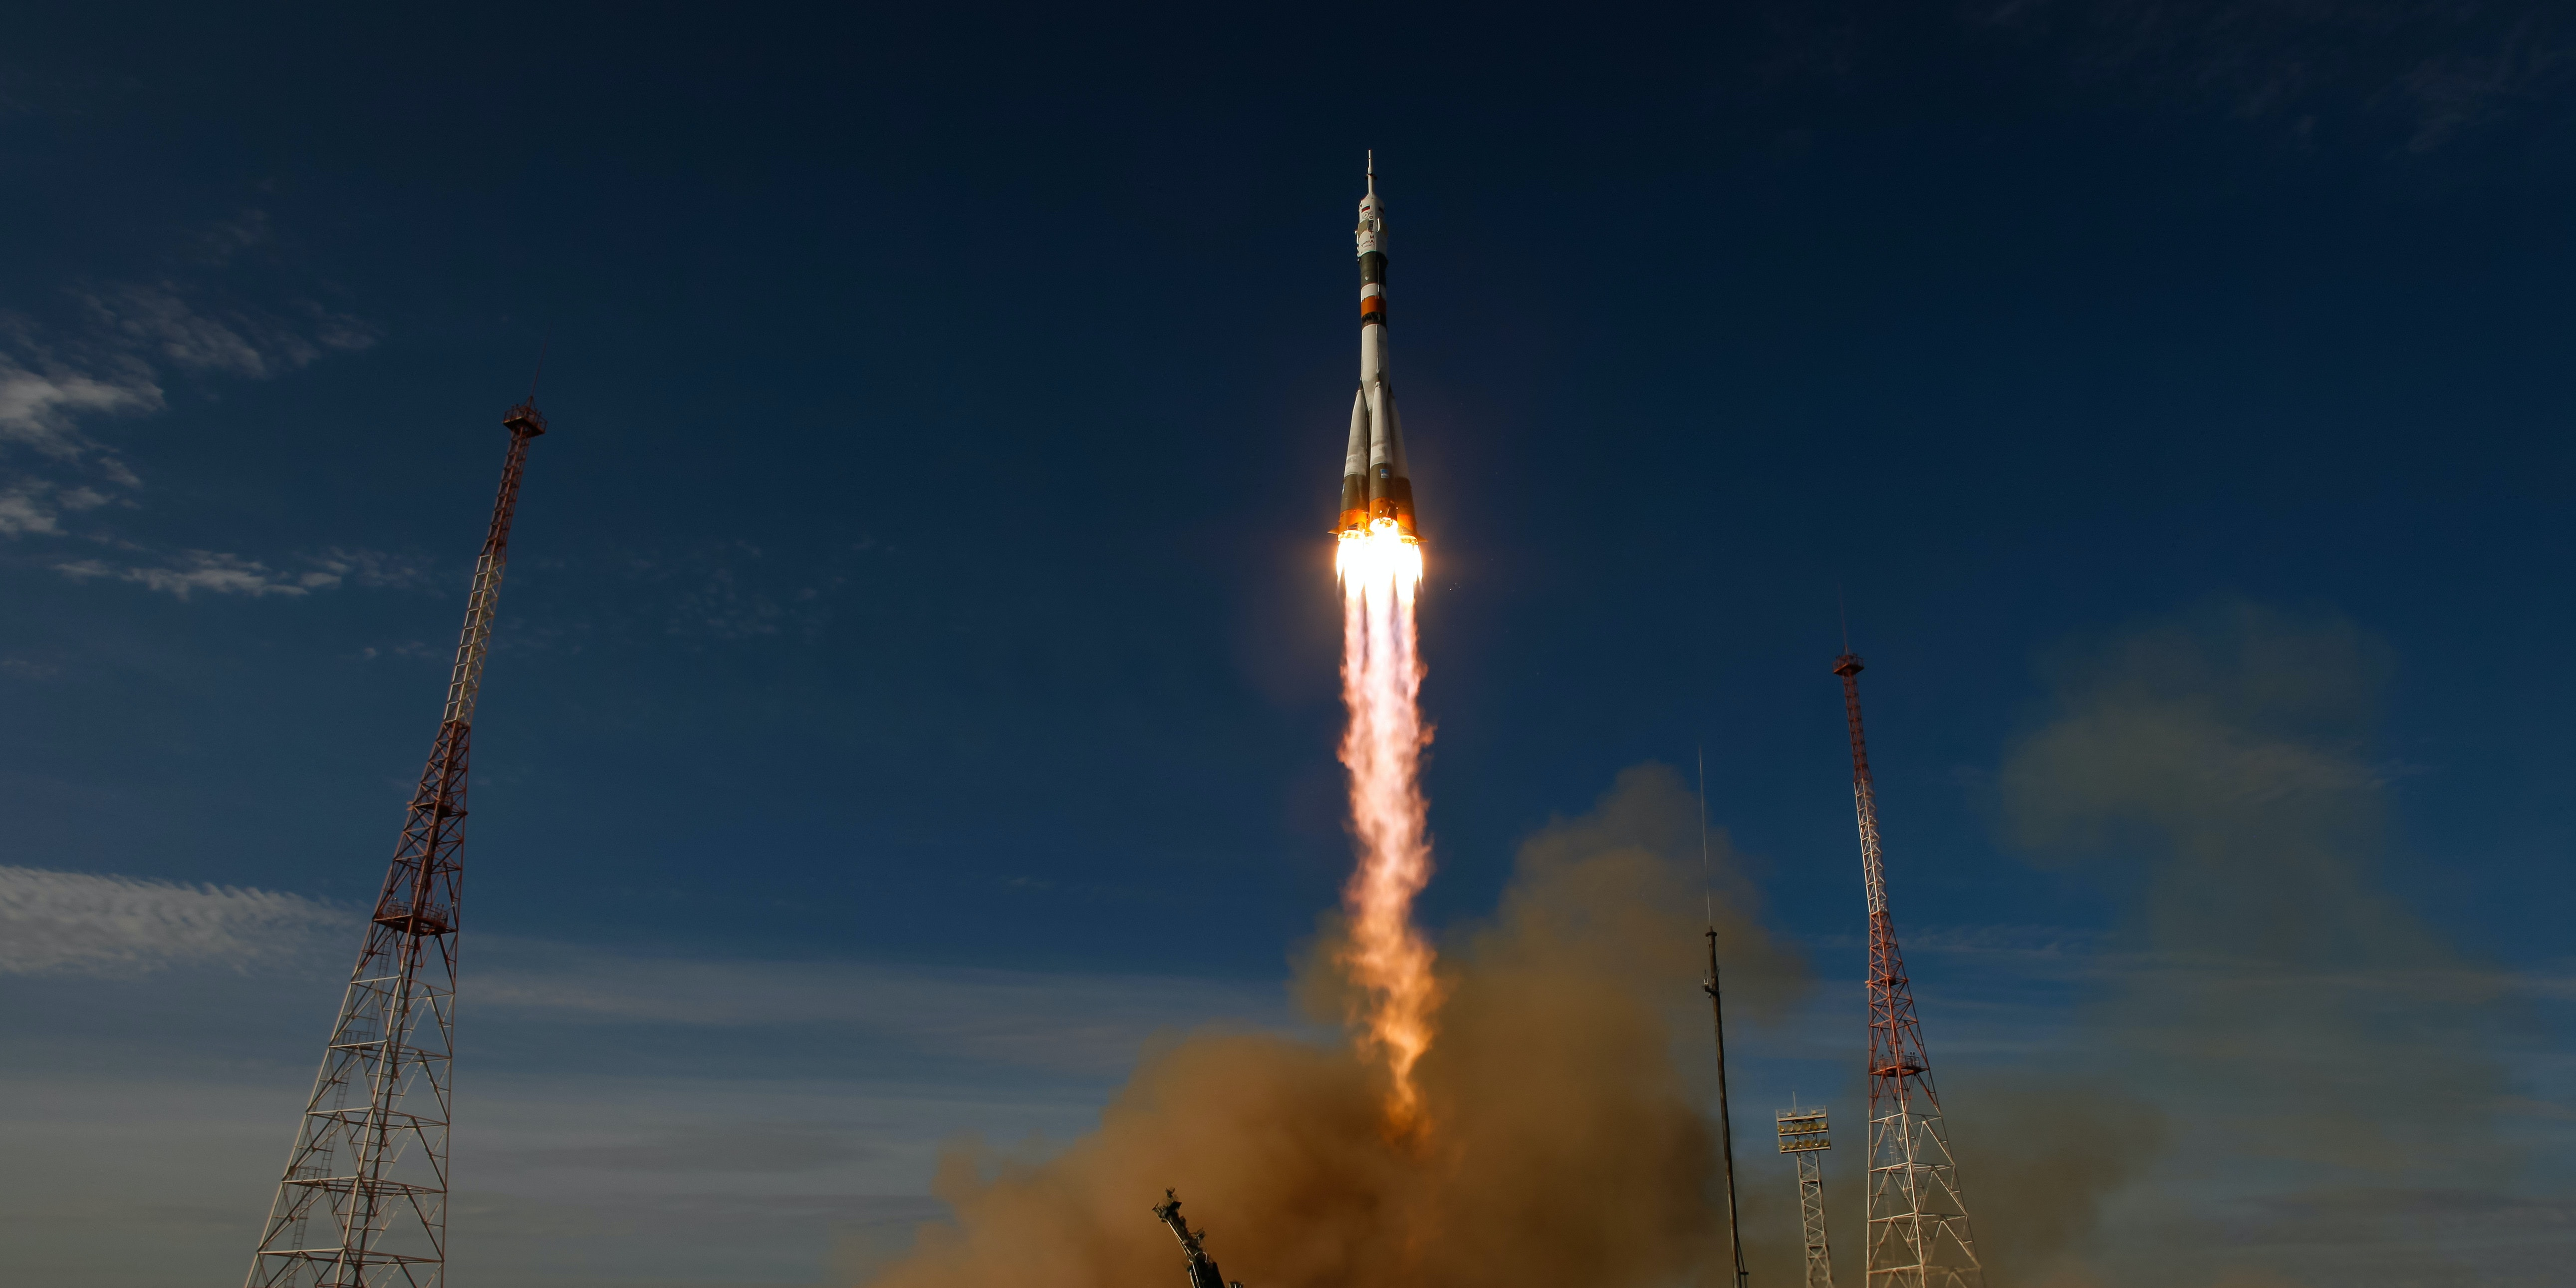 Soyuz TMA-06M rocket launches from Baikonur